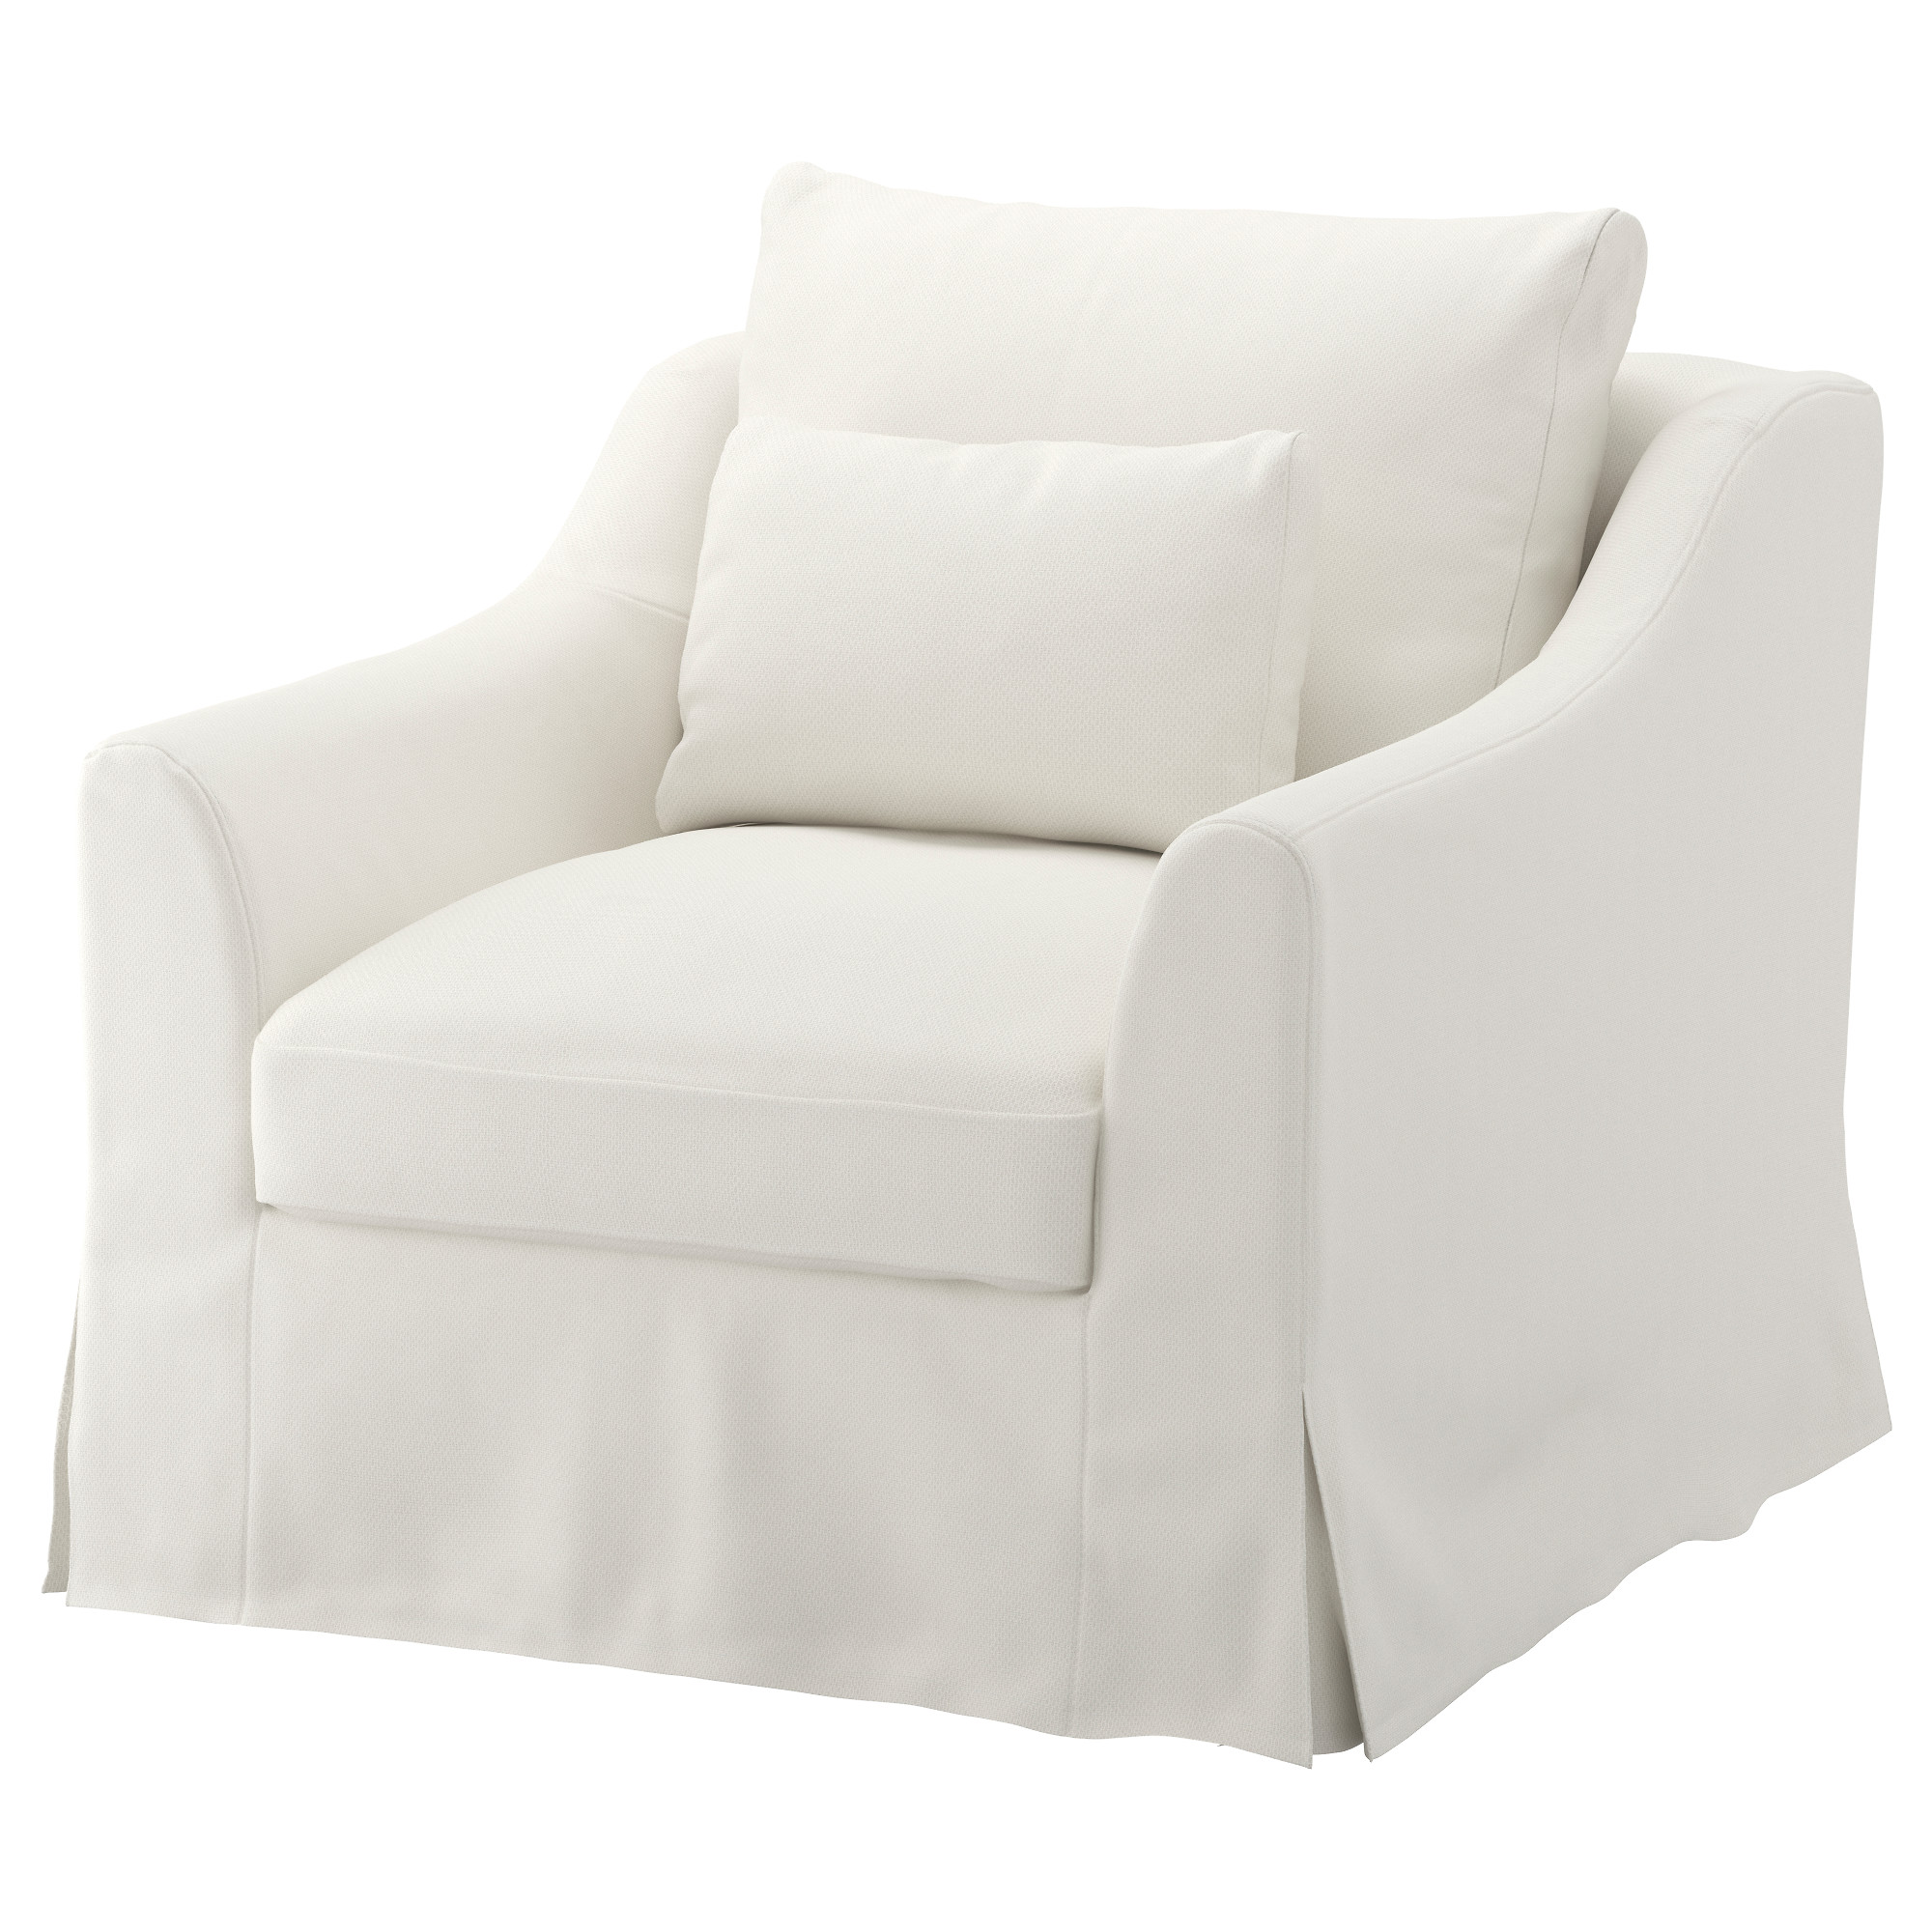 Slip Cover For Chair FÄrlÖv Armchair Flodafors White